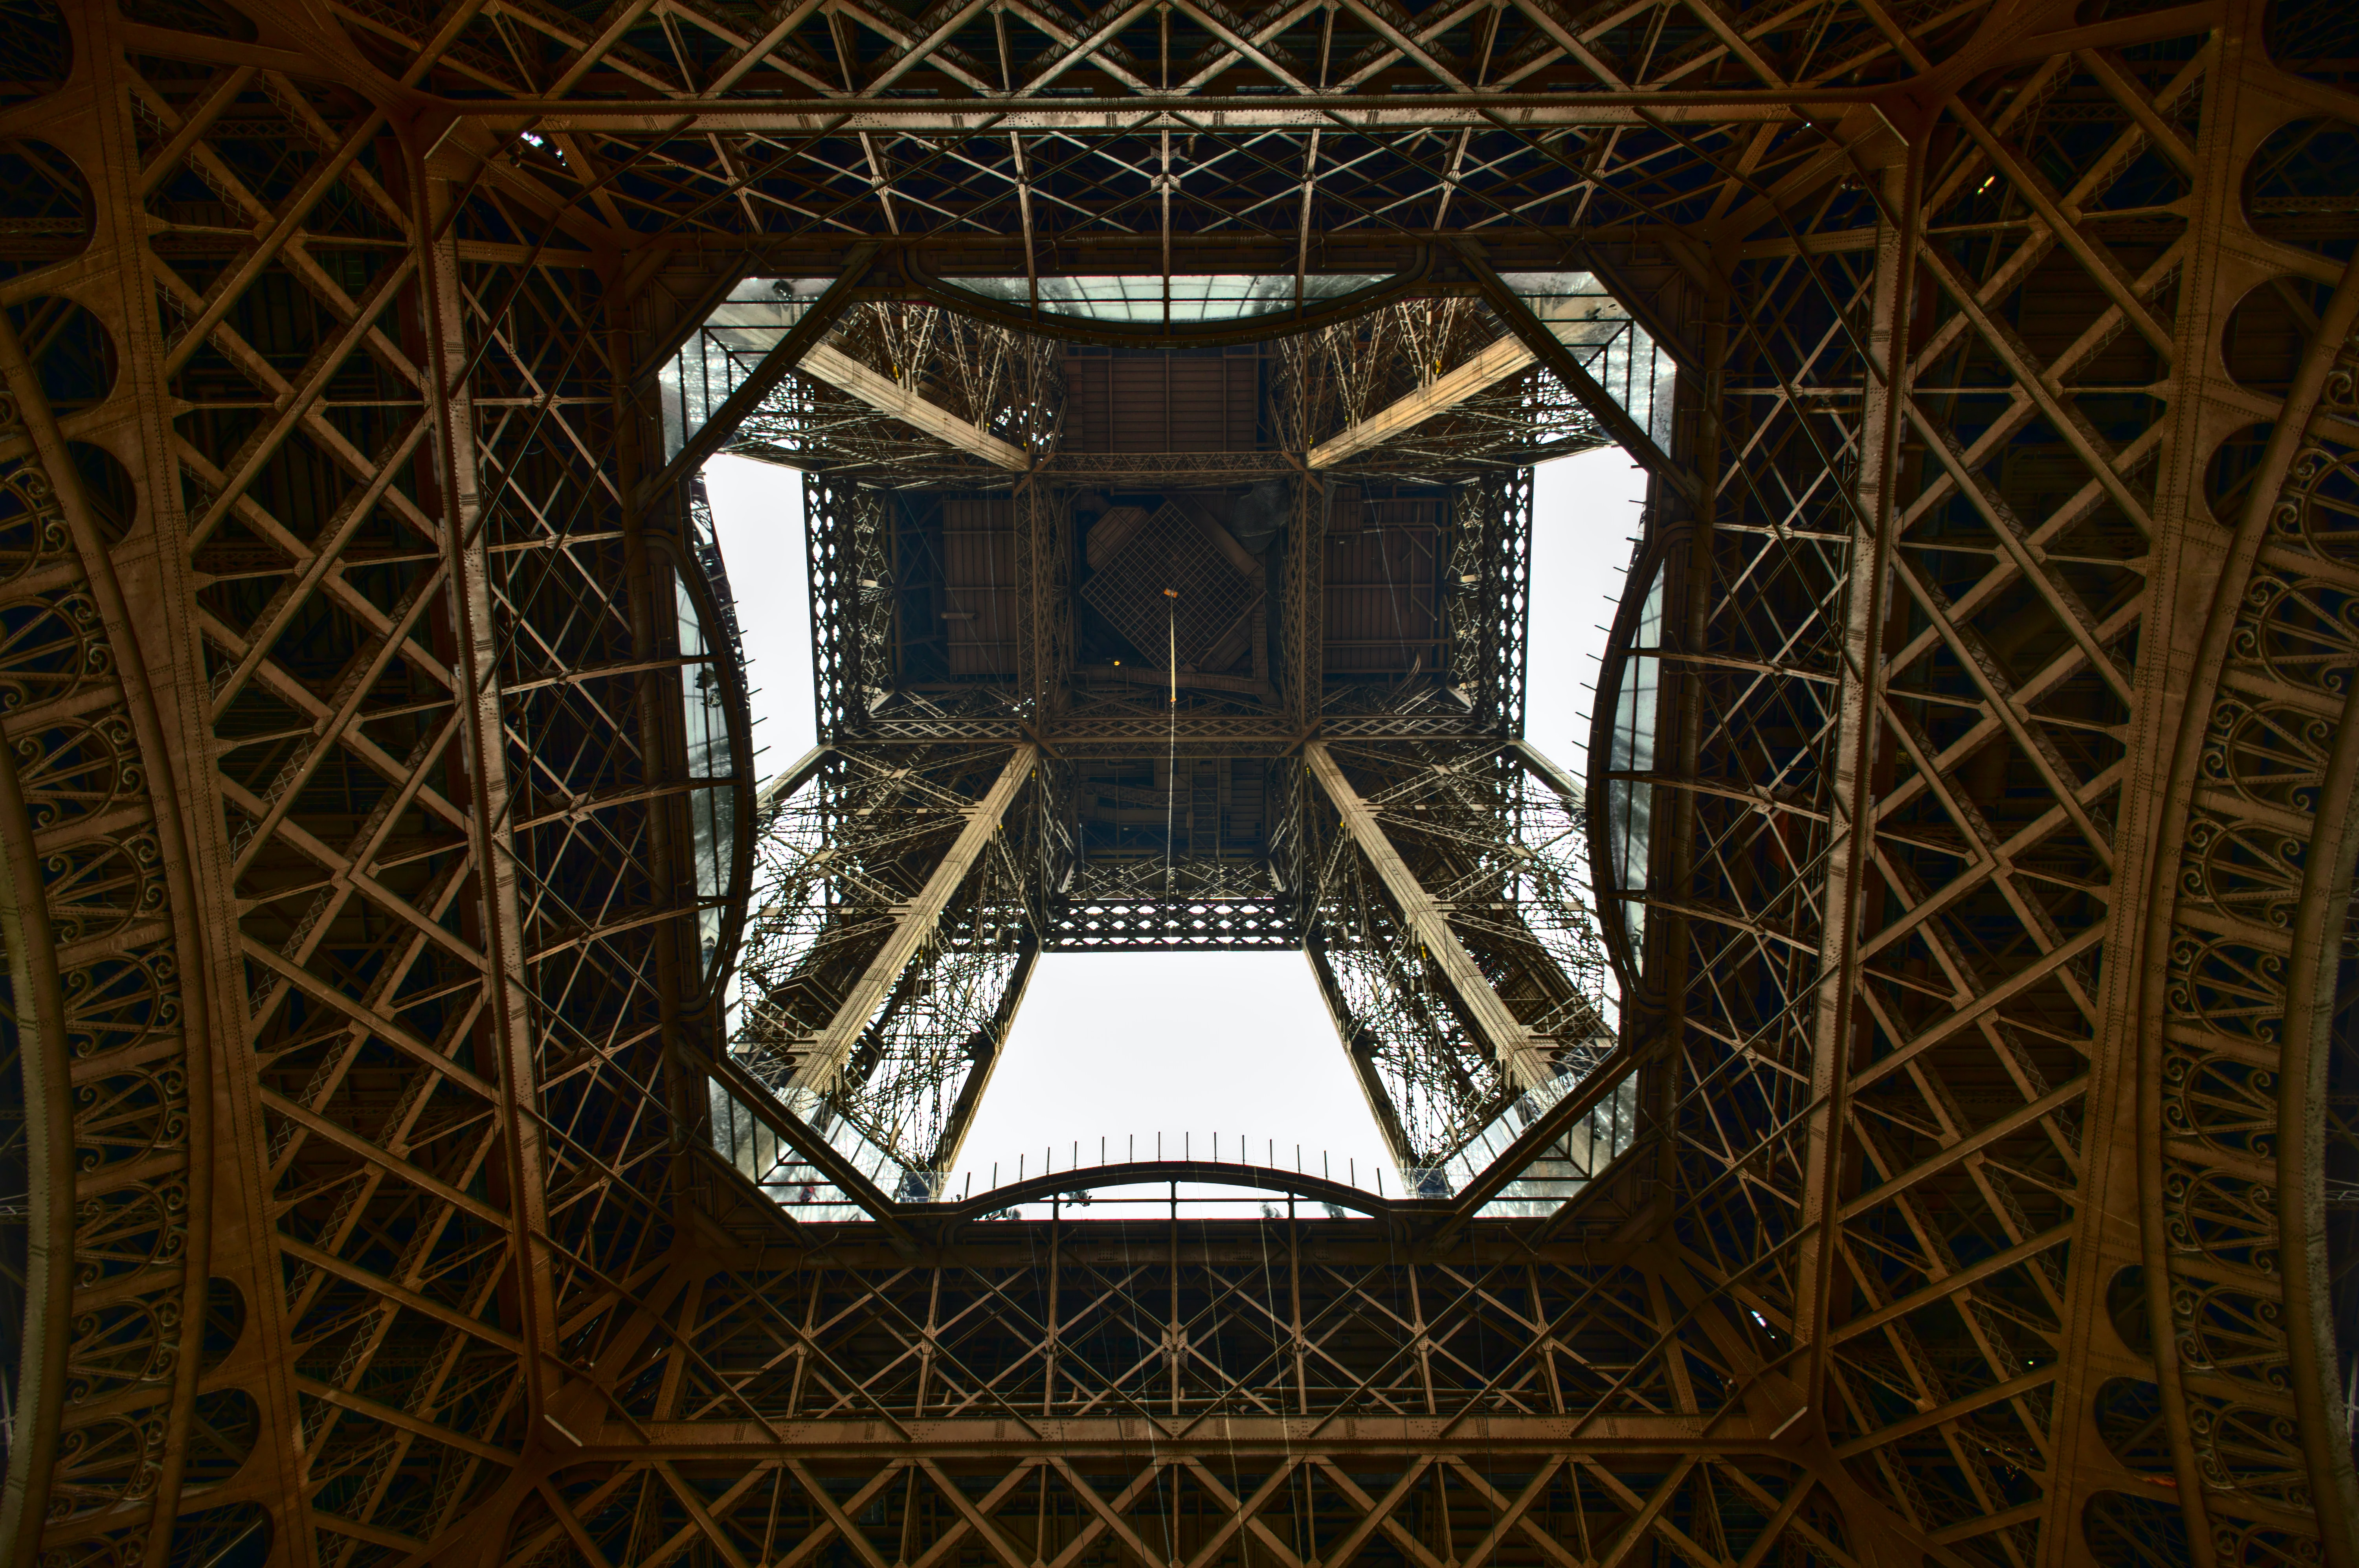 Looking up at the frame of the Eiffel Tower in Paris from directly underneath it